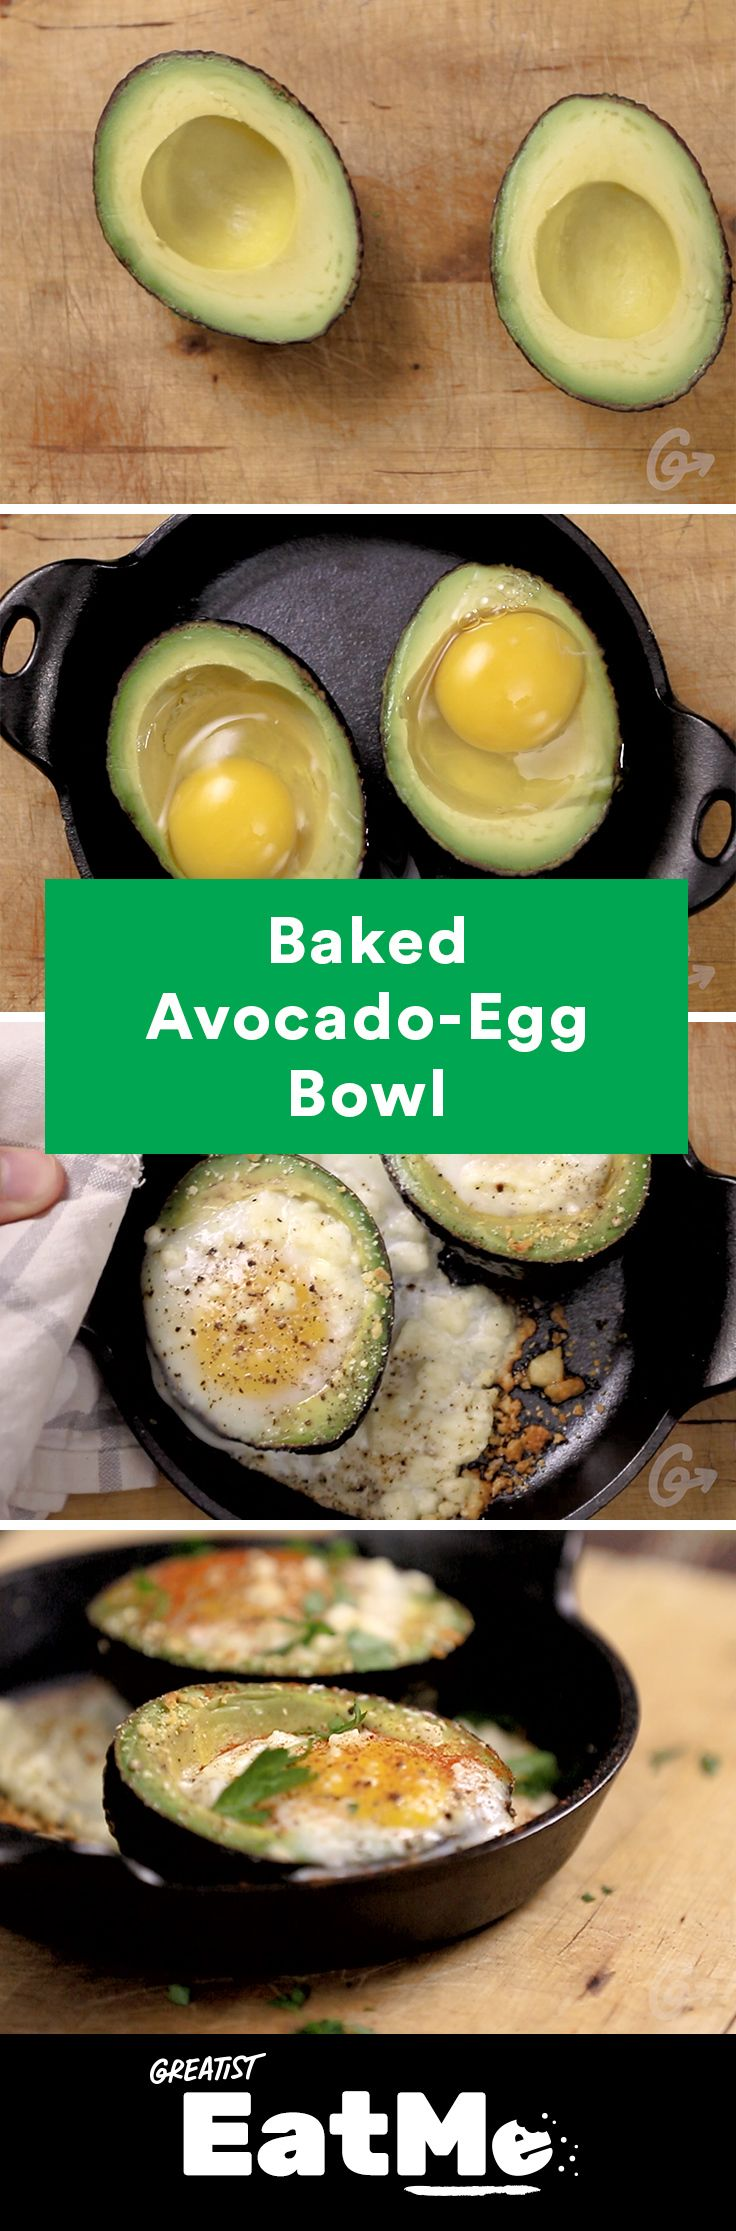 You won't miss avocado toast after feasting your eyes on this recipe. #healthy #avocado #recipe http://greatist.com/eat/baked-avocado-egg-bowl-recipe-video